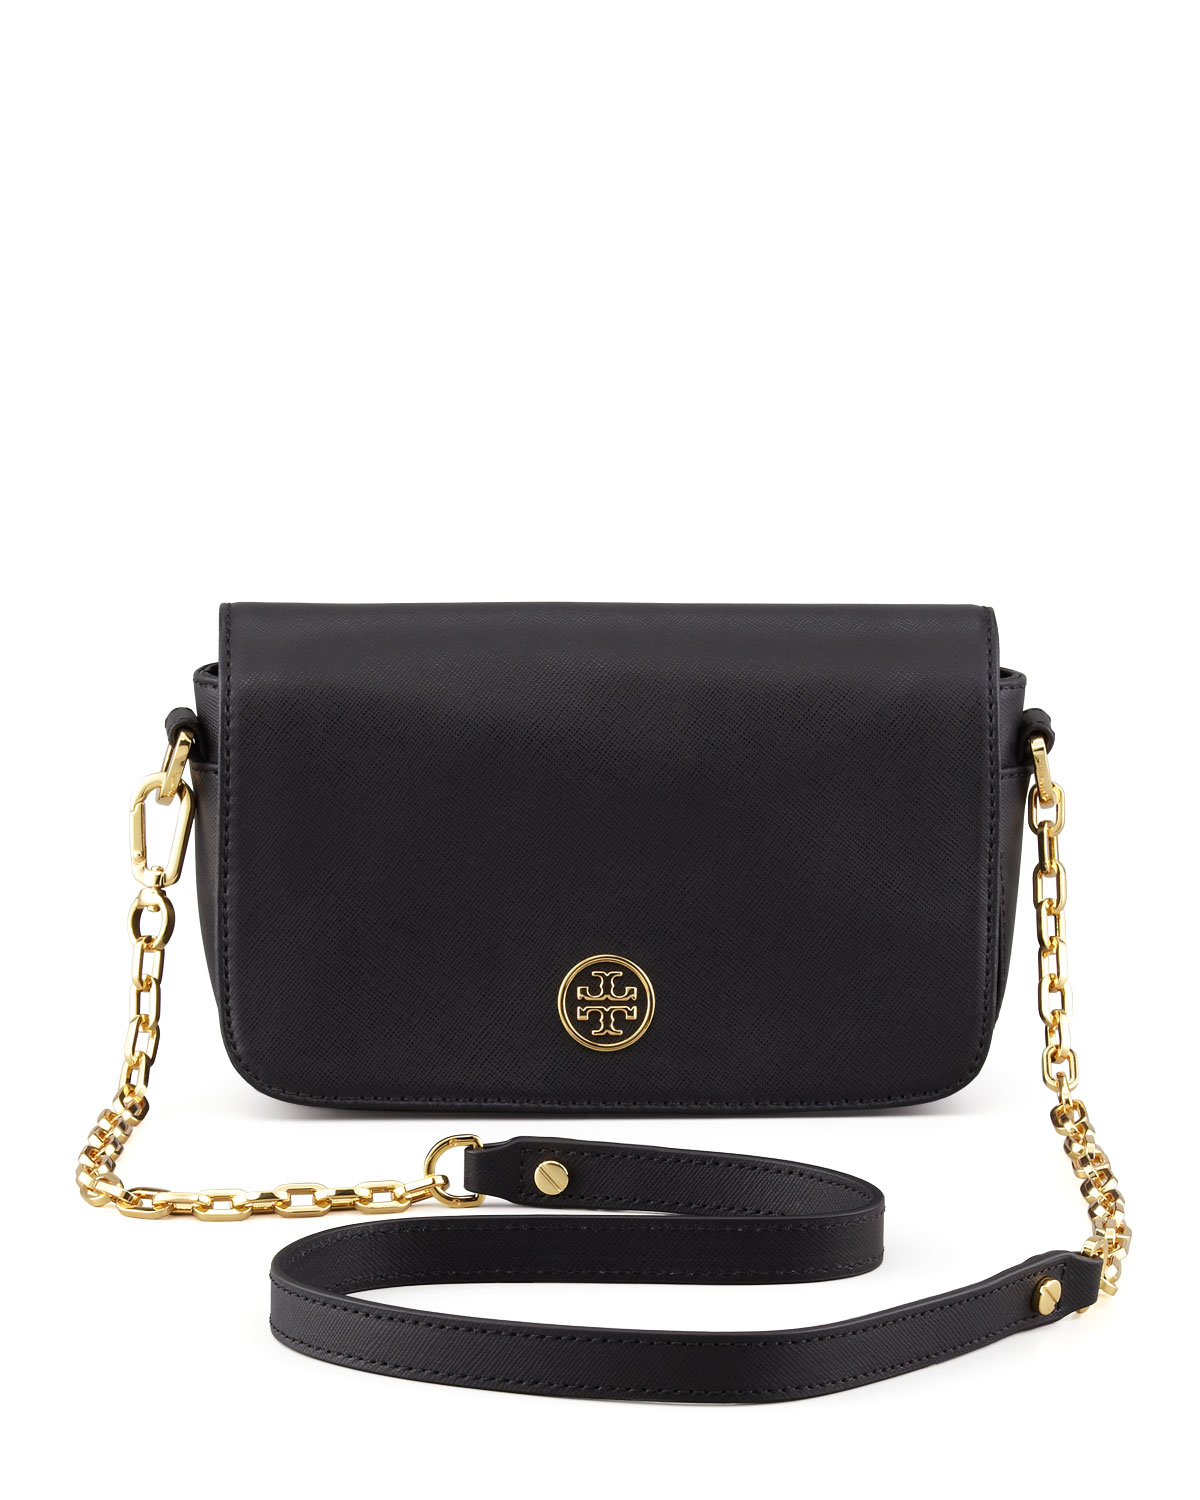 77ff5307b90 Tory Burch Robinson Mini Chain-Strap Bag